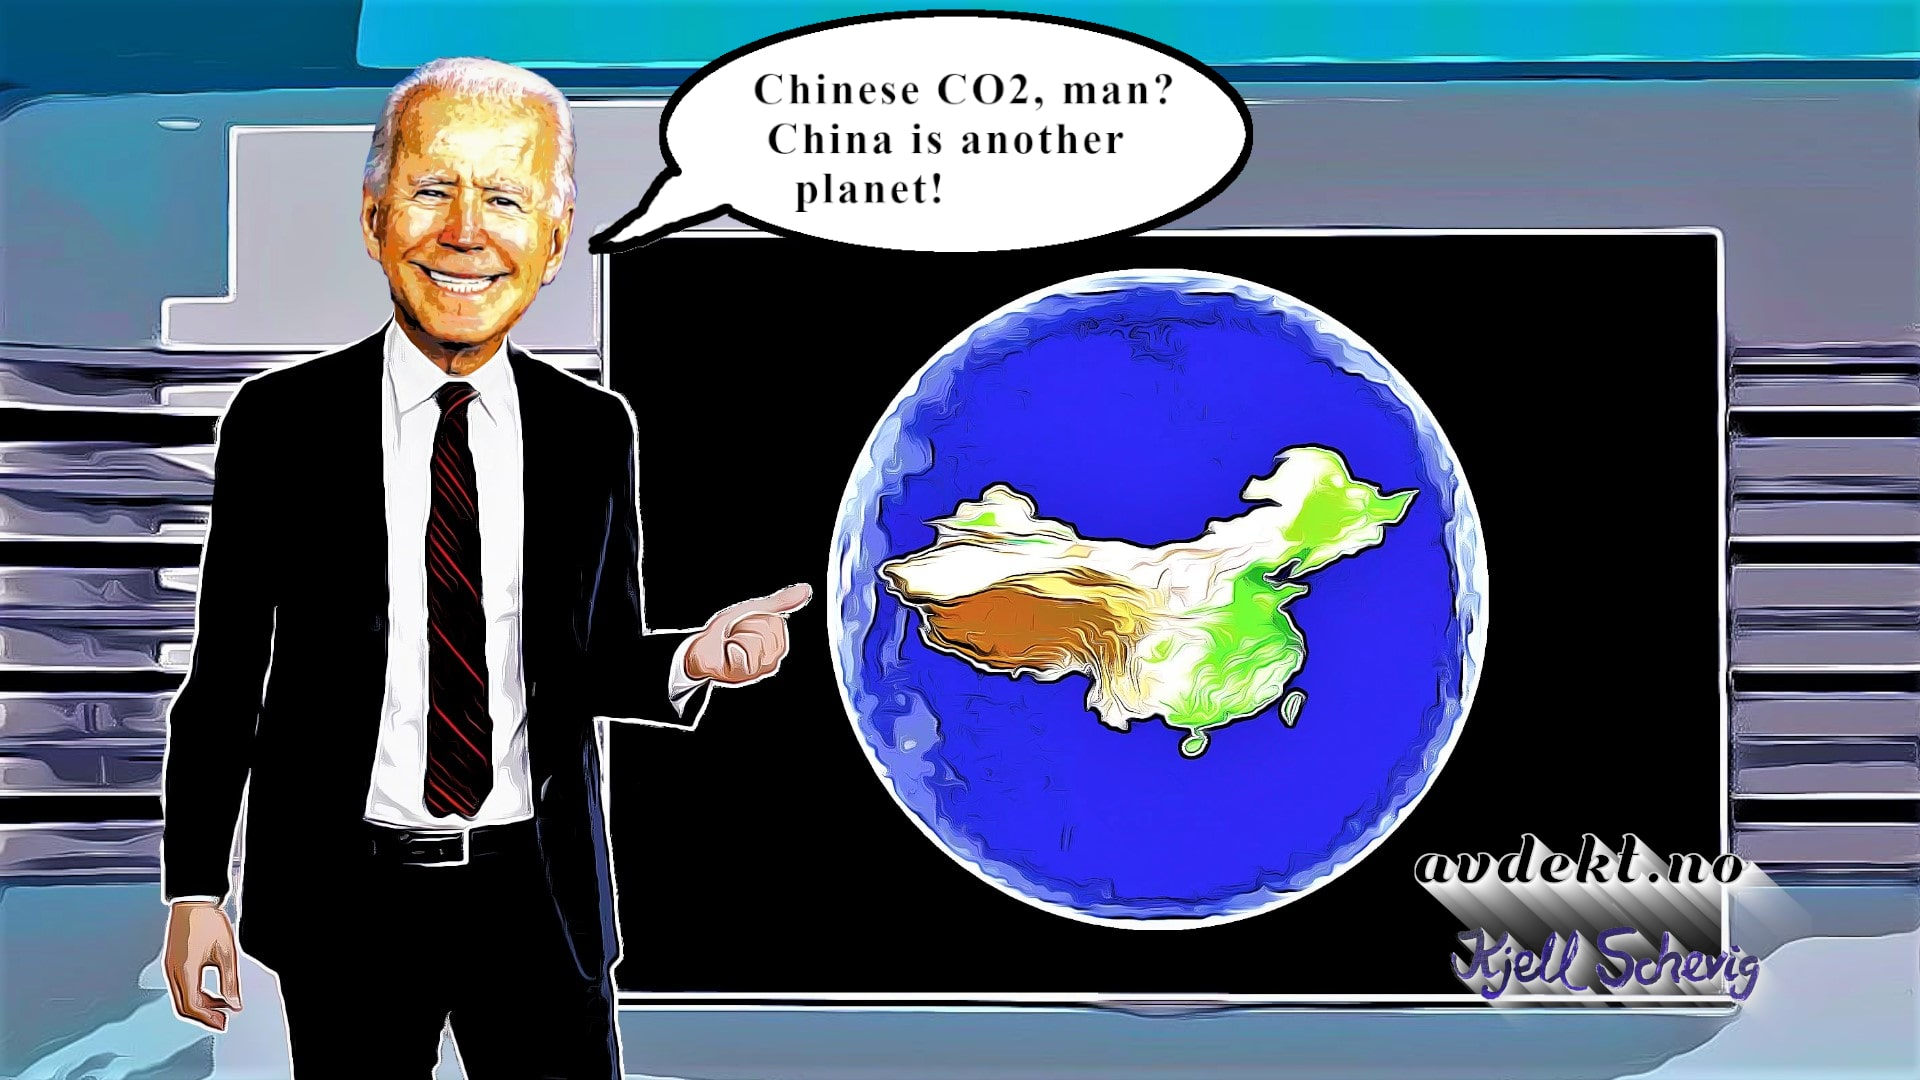 Chinese CO2, man? China is another planet!